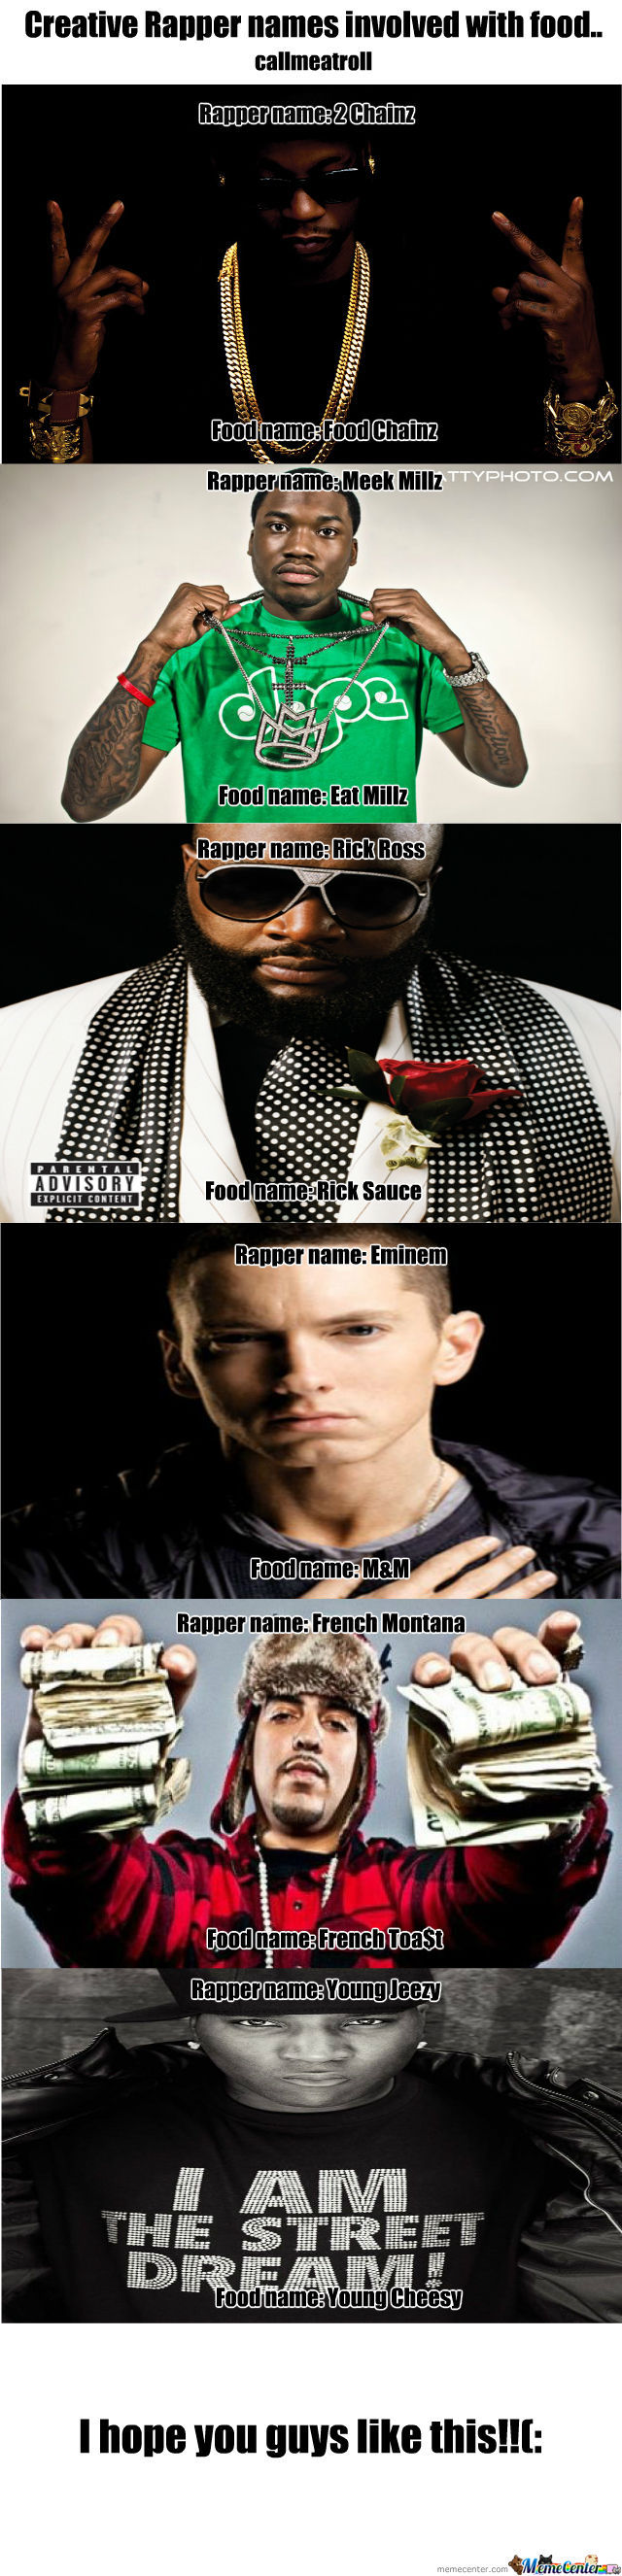 Rapper Food Names!